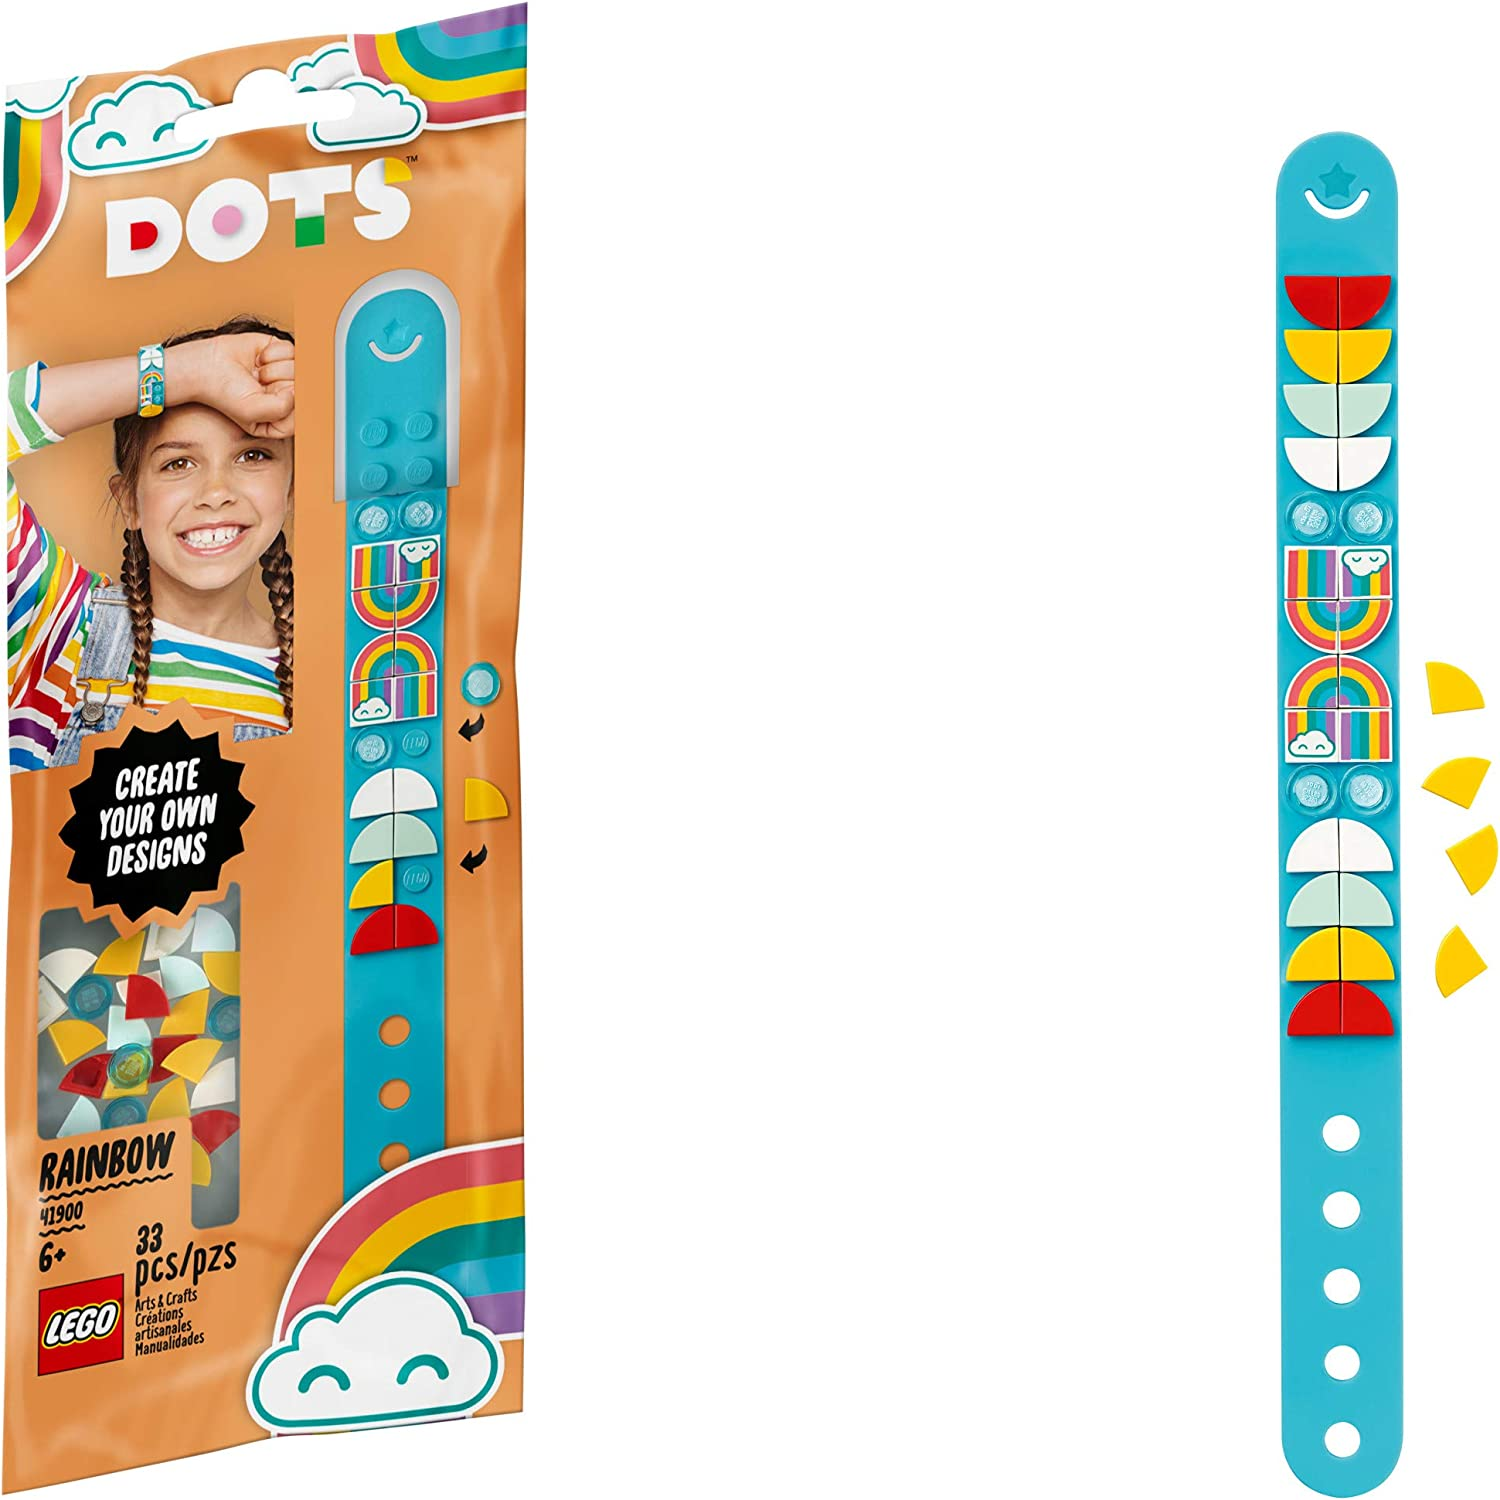 LEGO DOTS Rainbow Bracelet 41900 DIY Craft Bracelet Making Kit; A Fun Craft kit for Kids who Like Making Creative Jewelry, That Also Makes a Cool Holiday or Birthday Gift Toy, New 2020 (33 Pieces): Toys & Games